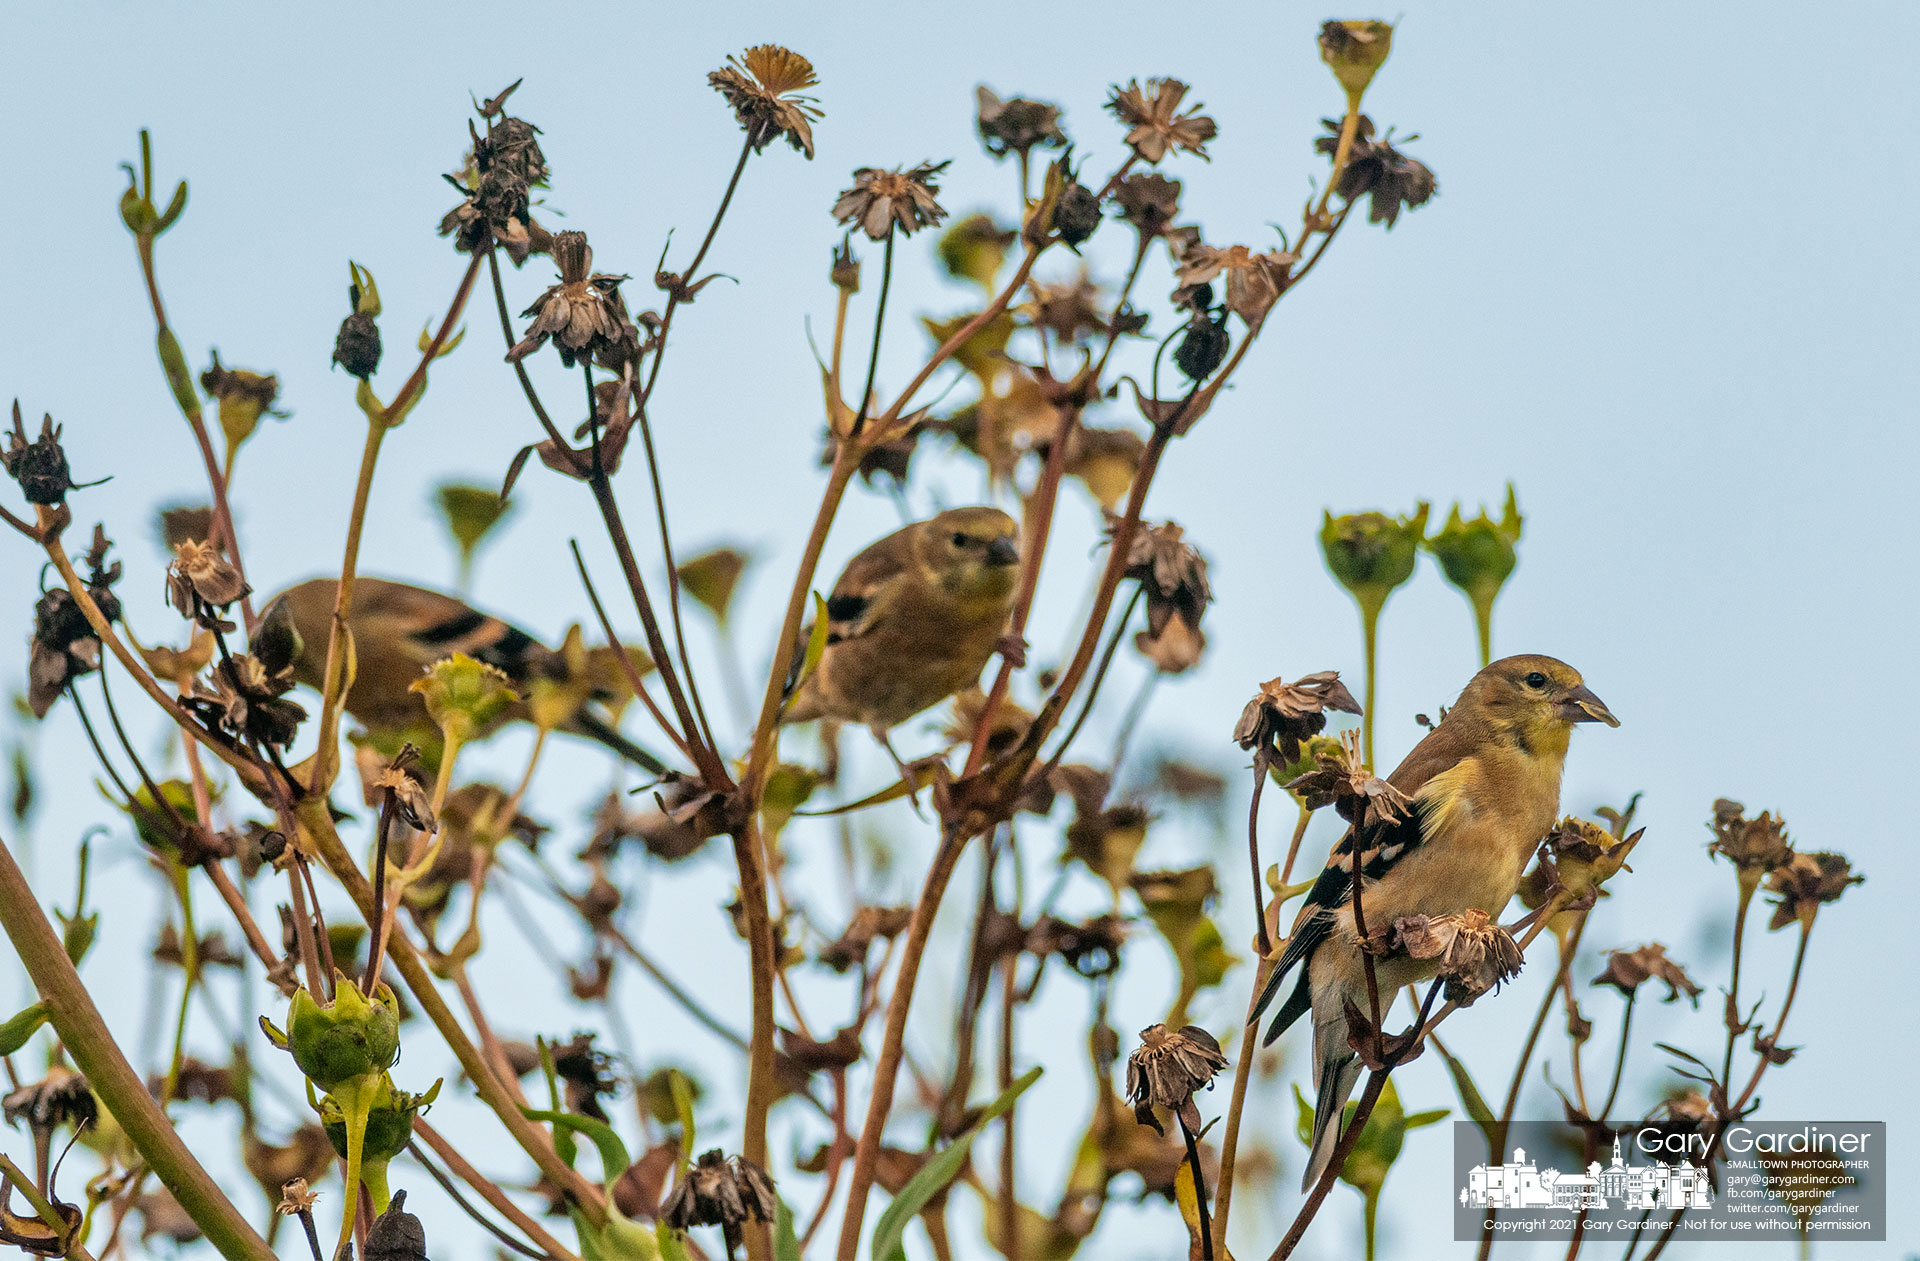 A flock of three nonbreeding goldfinch munch on the seeds of wildflowers growing along the wetlands at Highland. My Final Photo for Sept. 8, 2021.